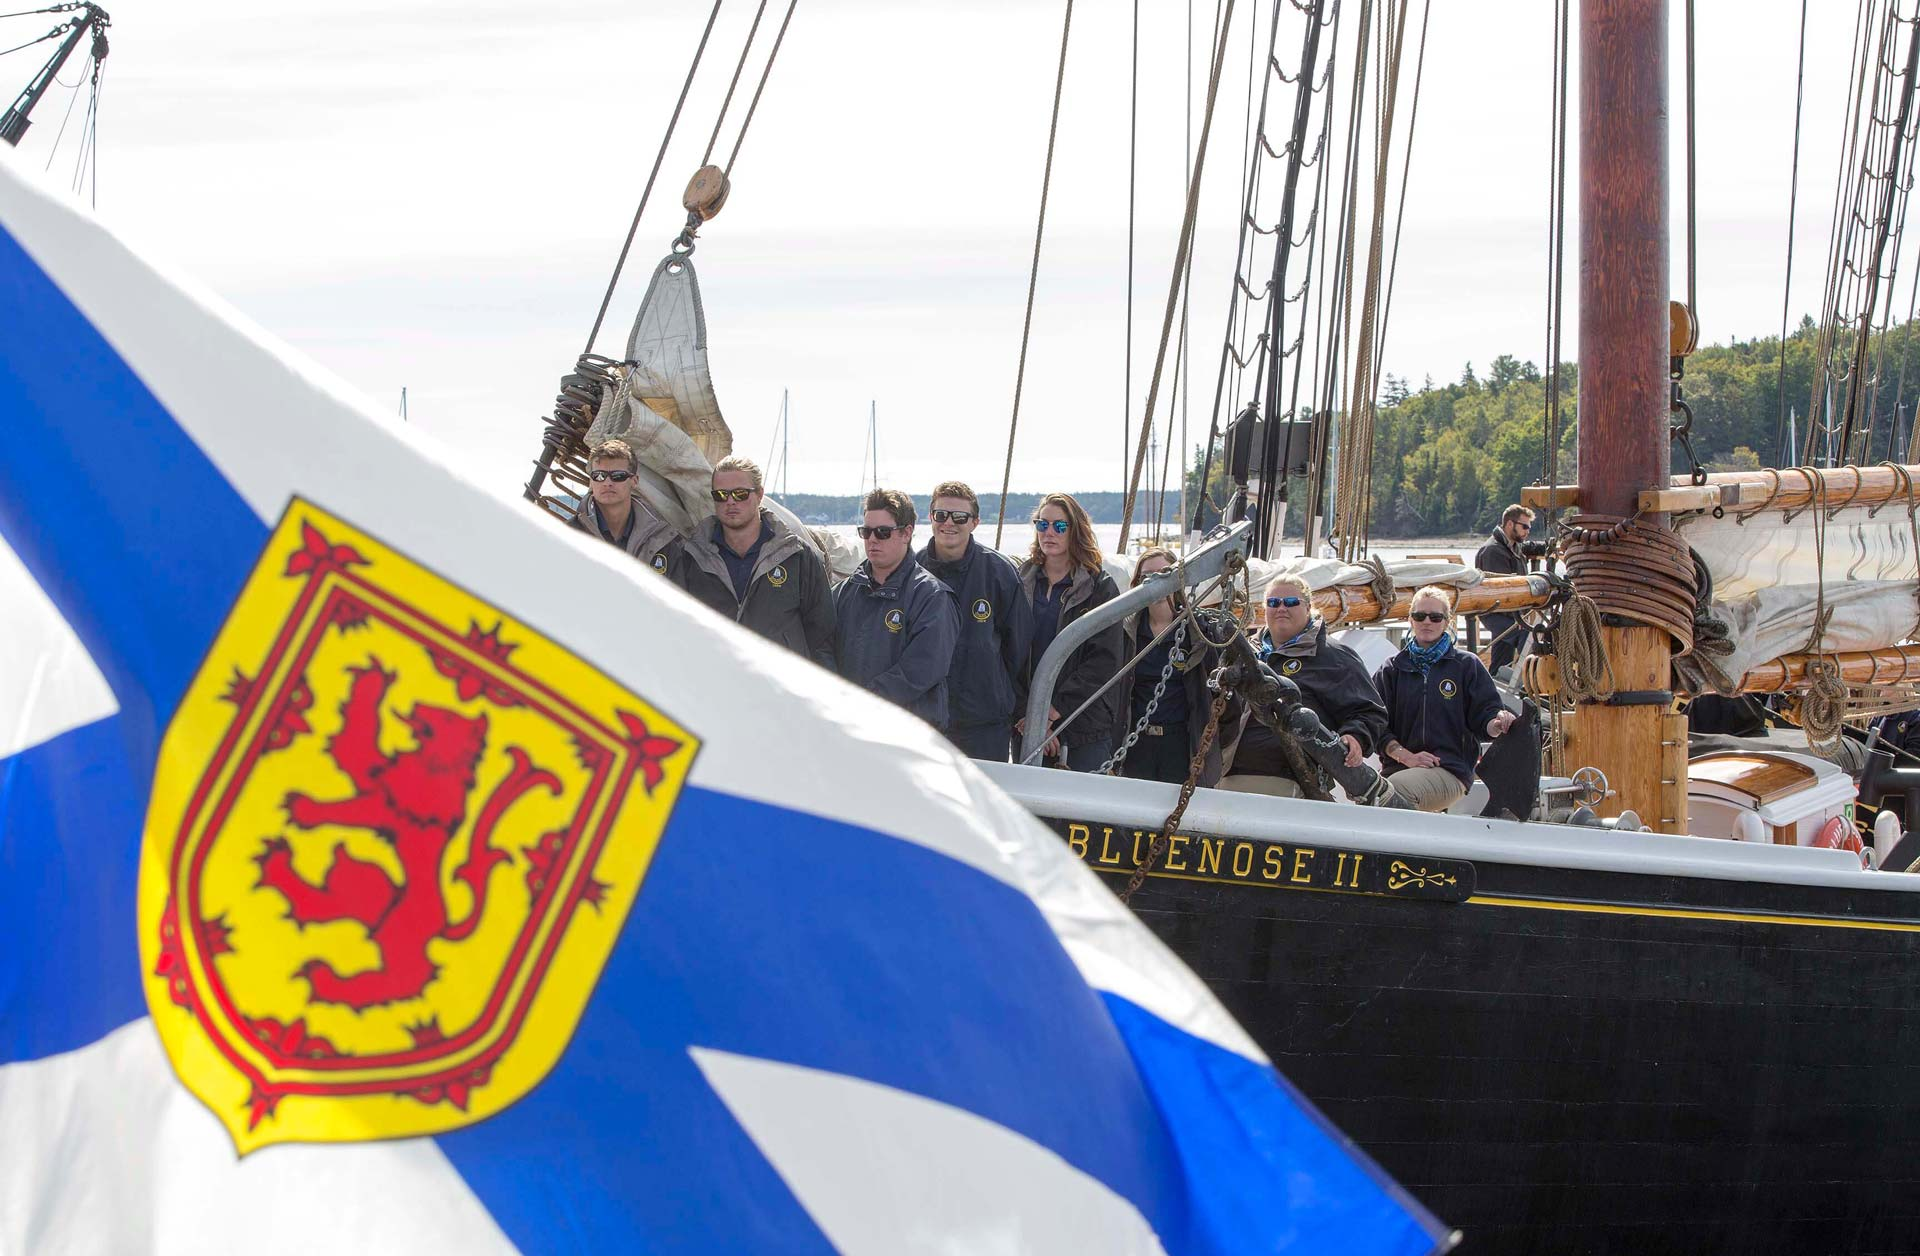 Nova Scotian Flag in front of Tall Ship